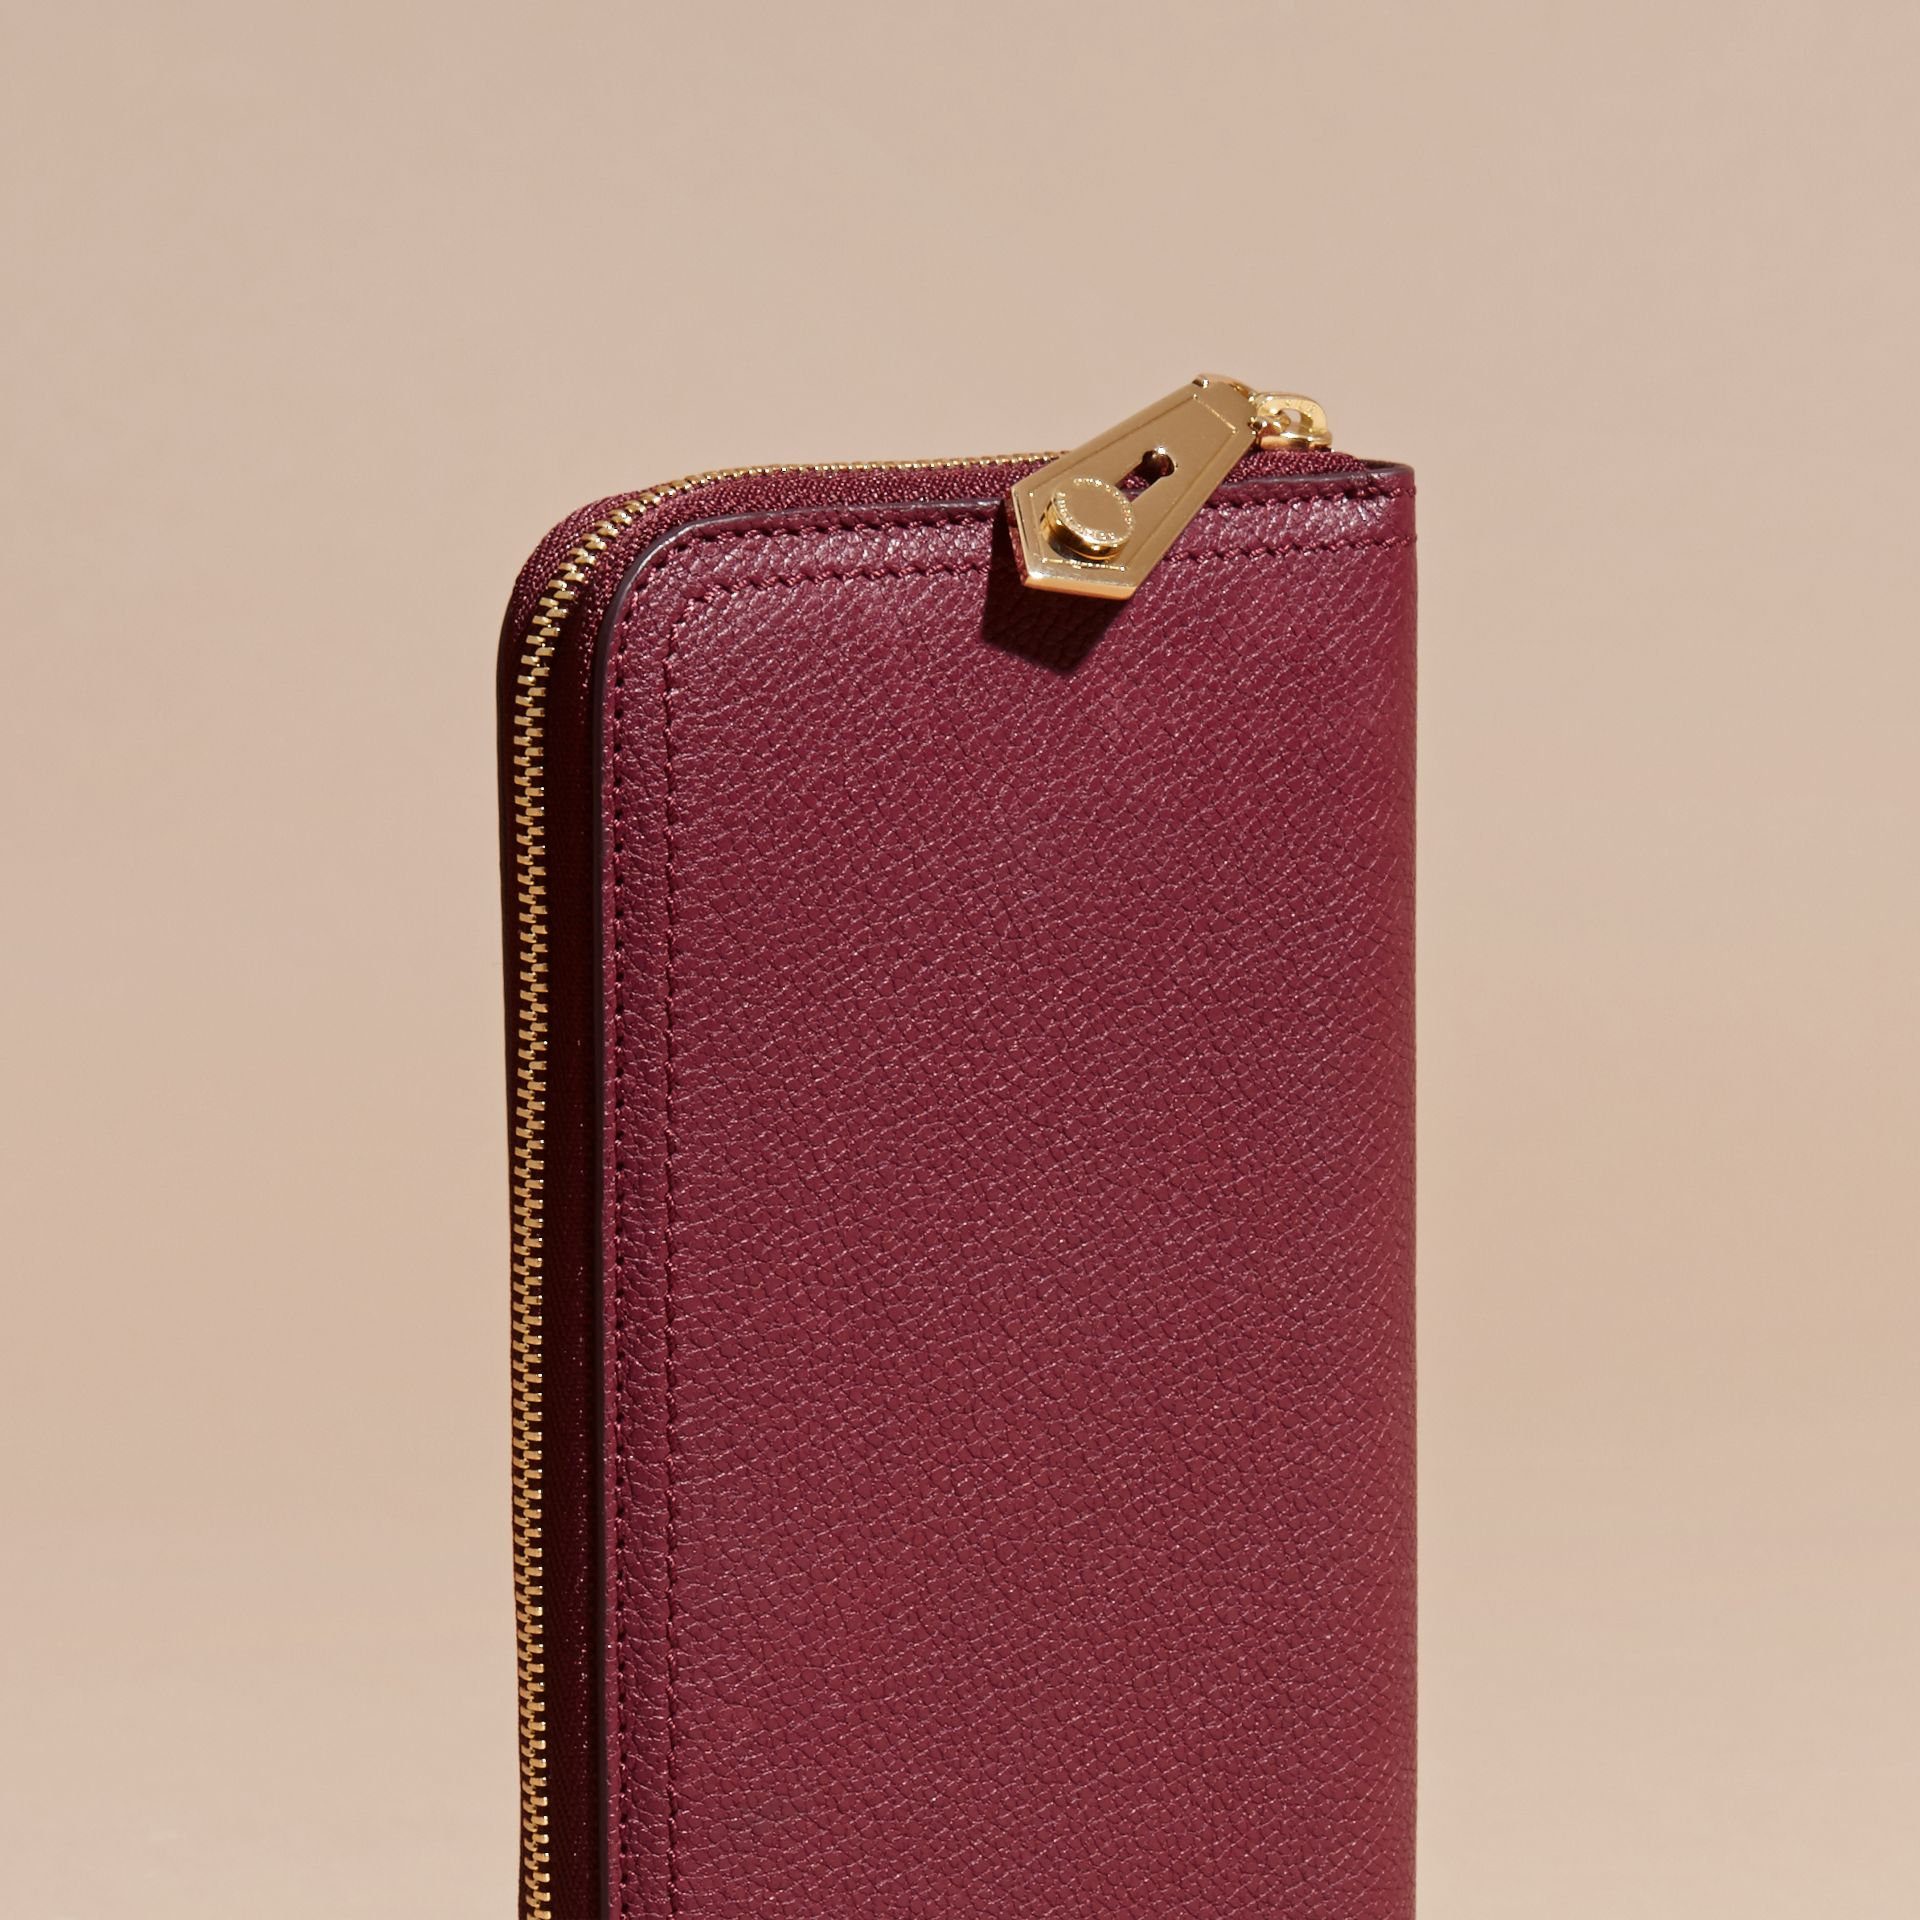 Dark plum Grainy Leather Ziparound Wallet Dark Plum - gallery image 3